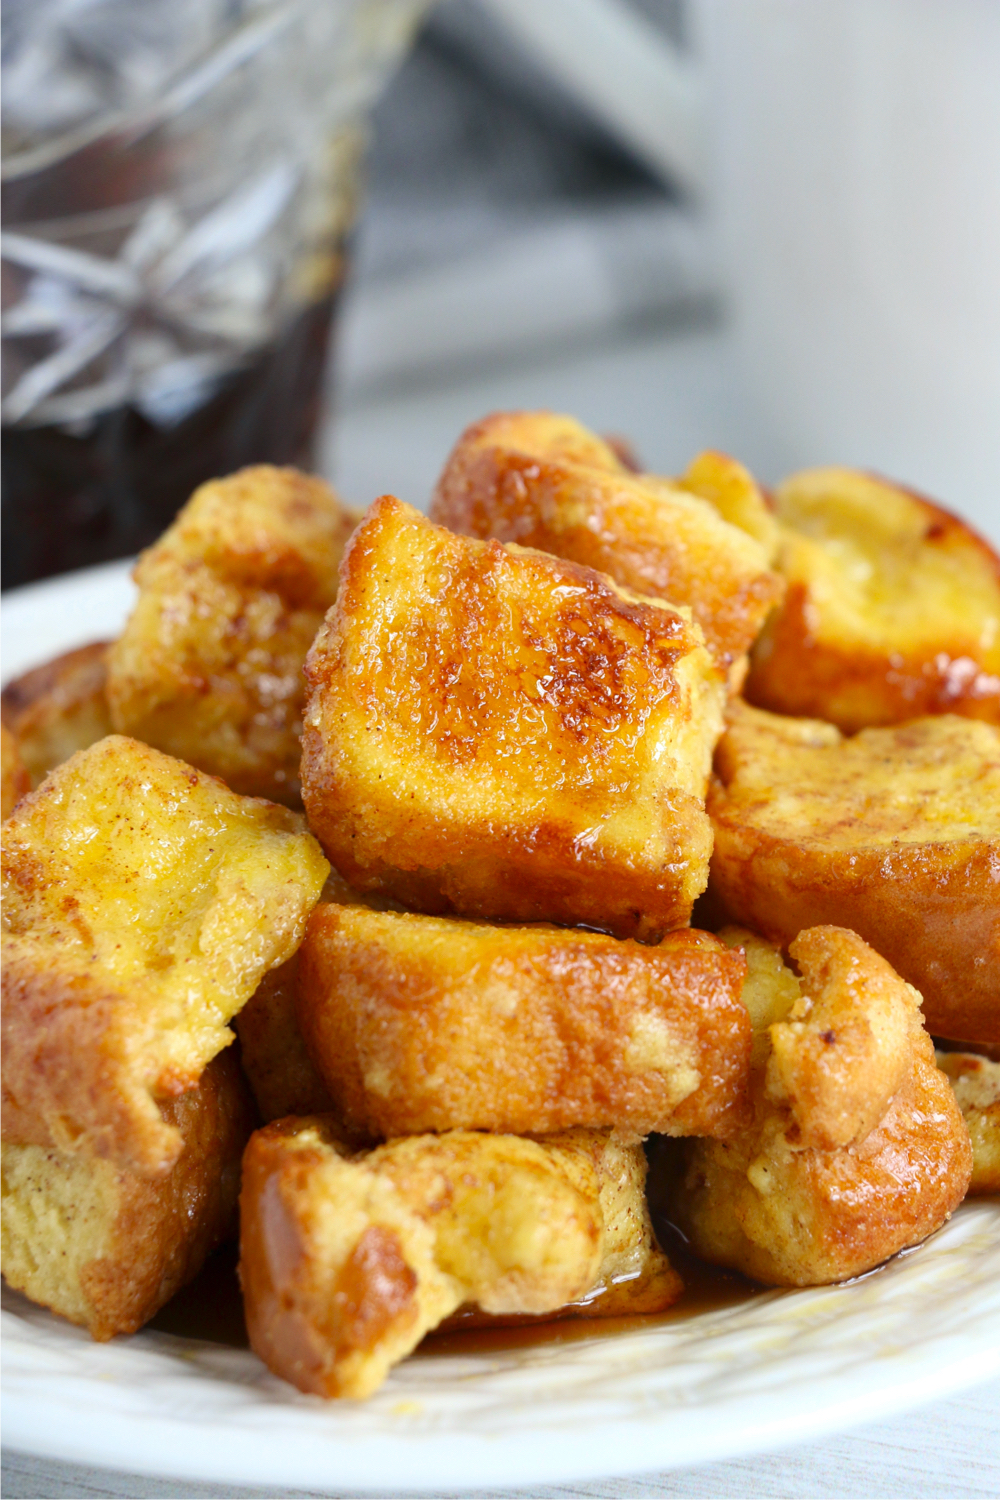 Stack of French Toast bites with syrup